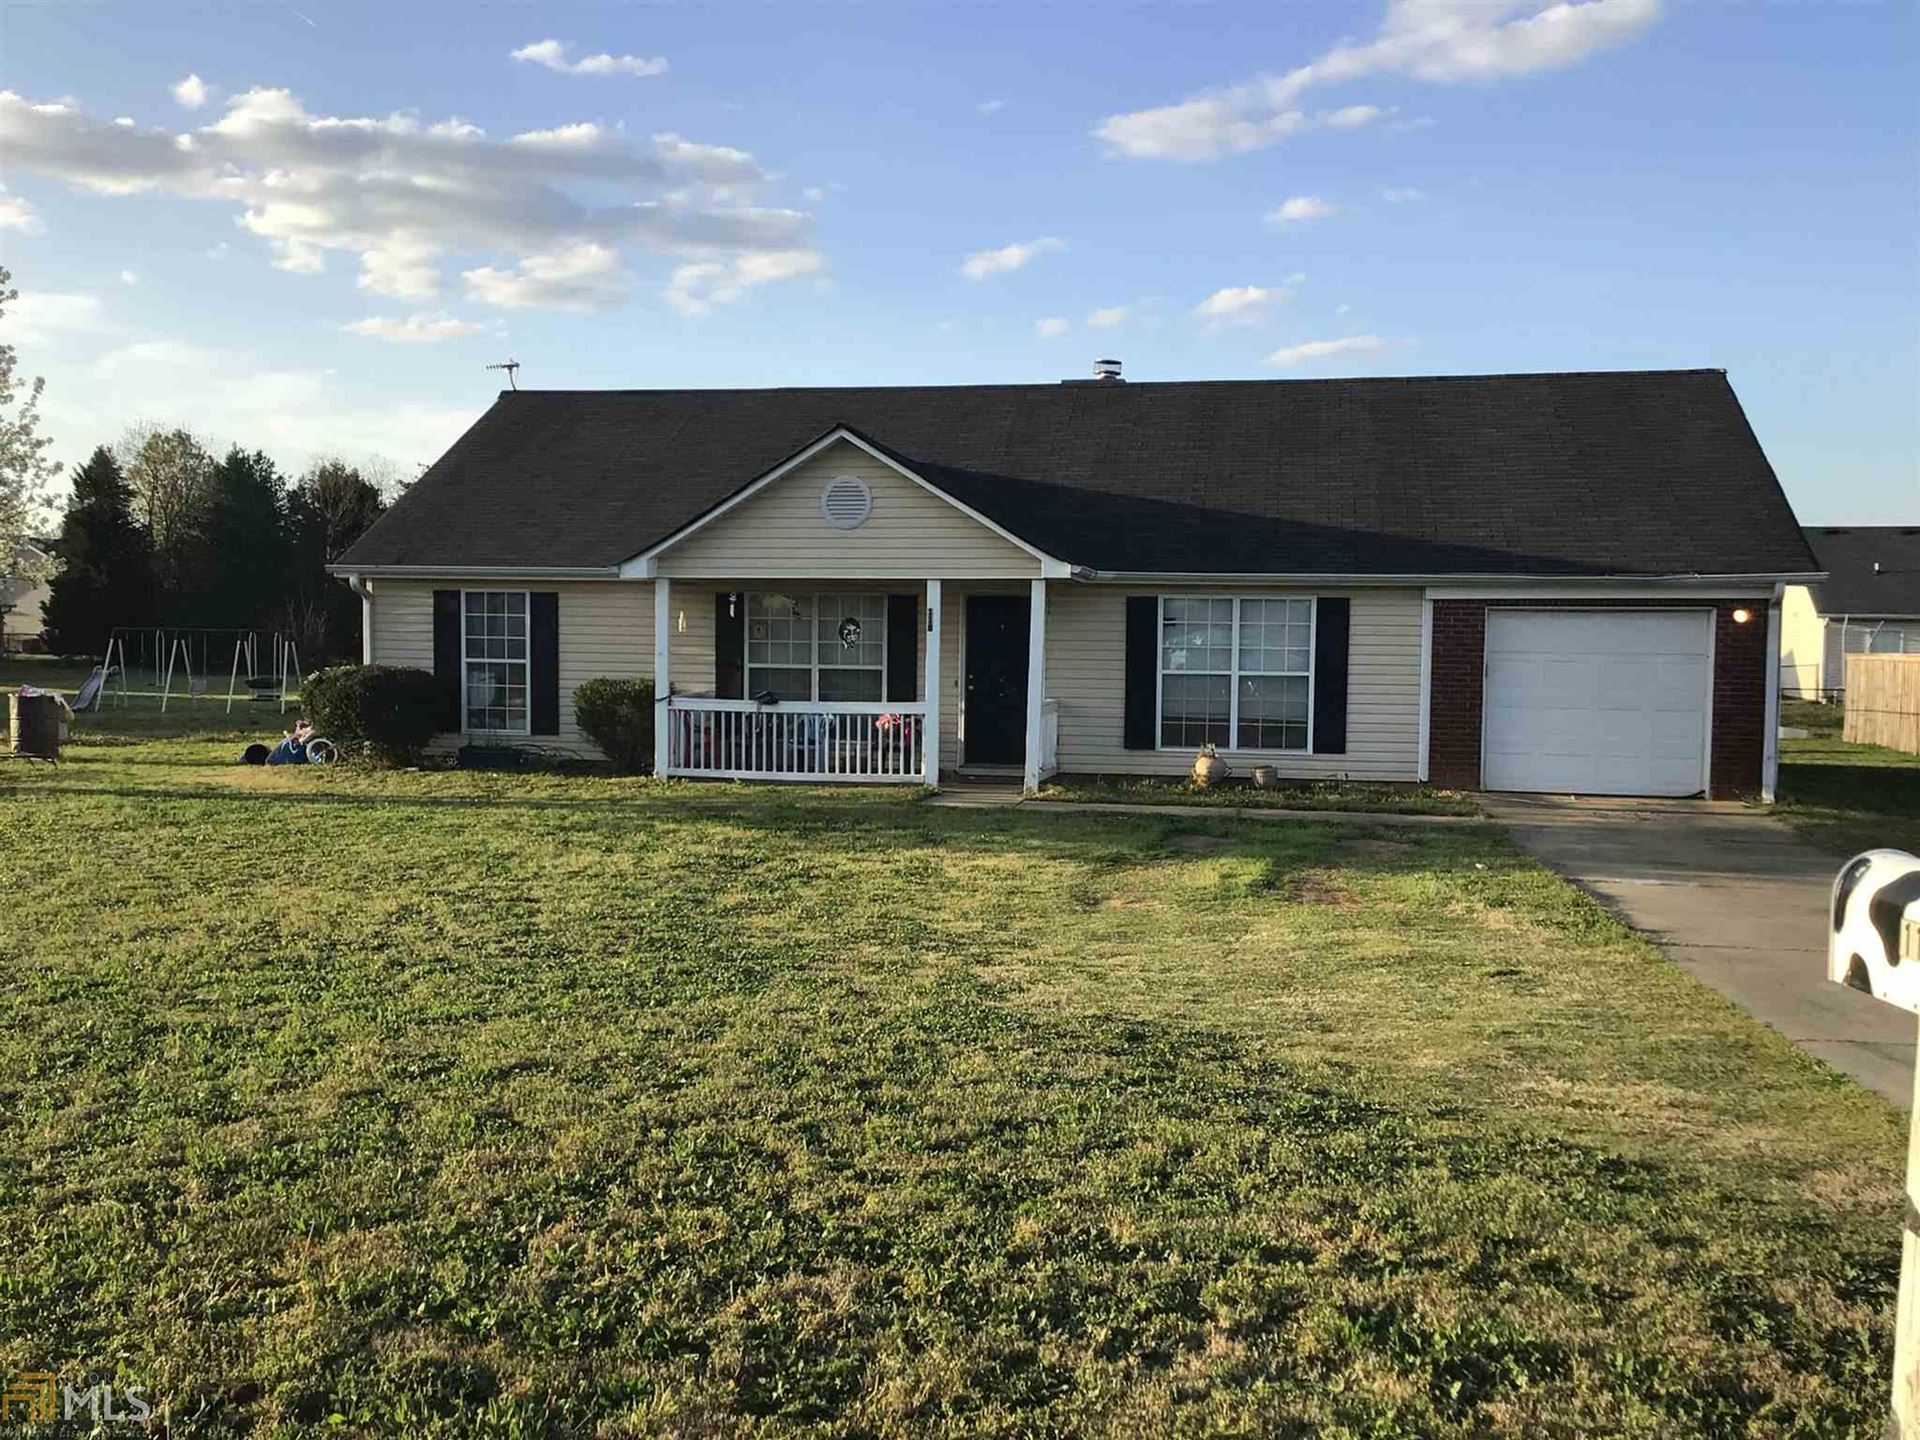 118 Shelby, Macon, GA 31216 - MLS#: 8952677